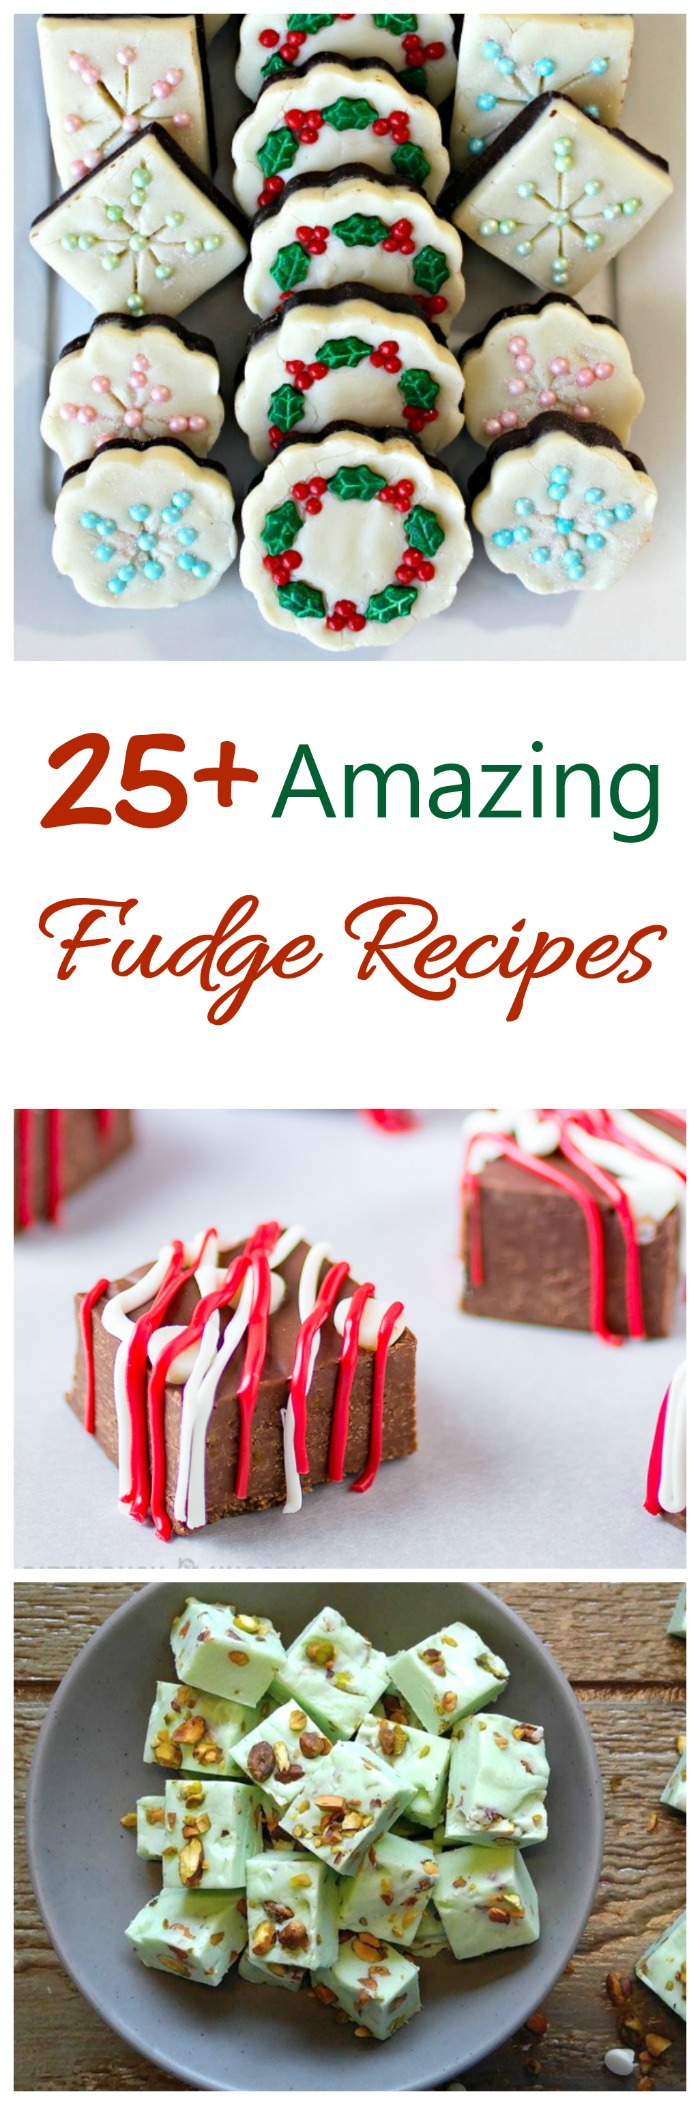 25 Amazing Fudge Recipes for the holidays